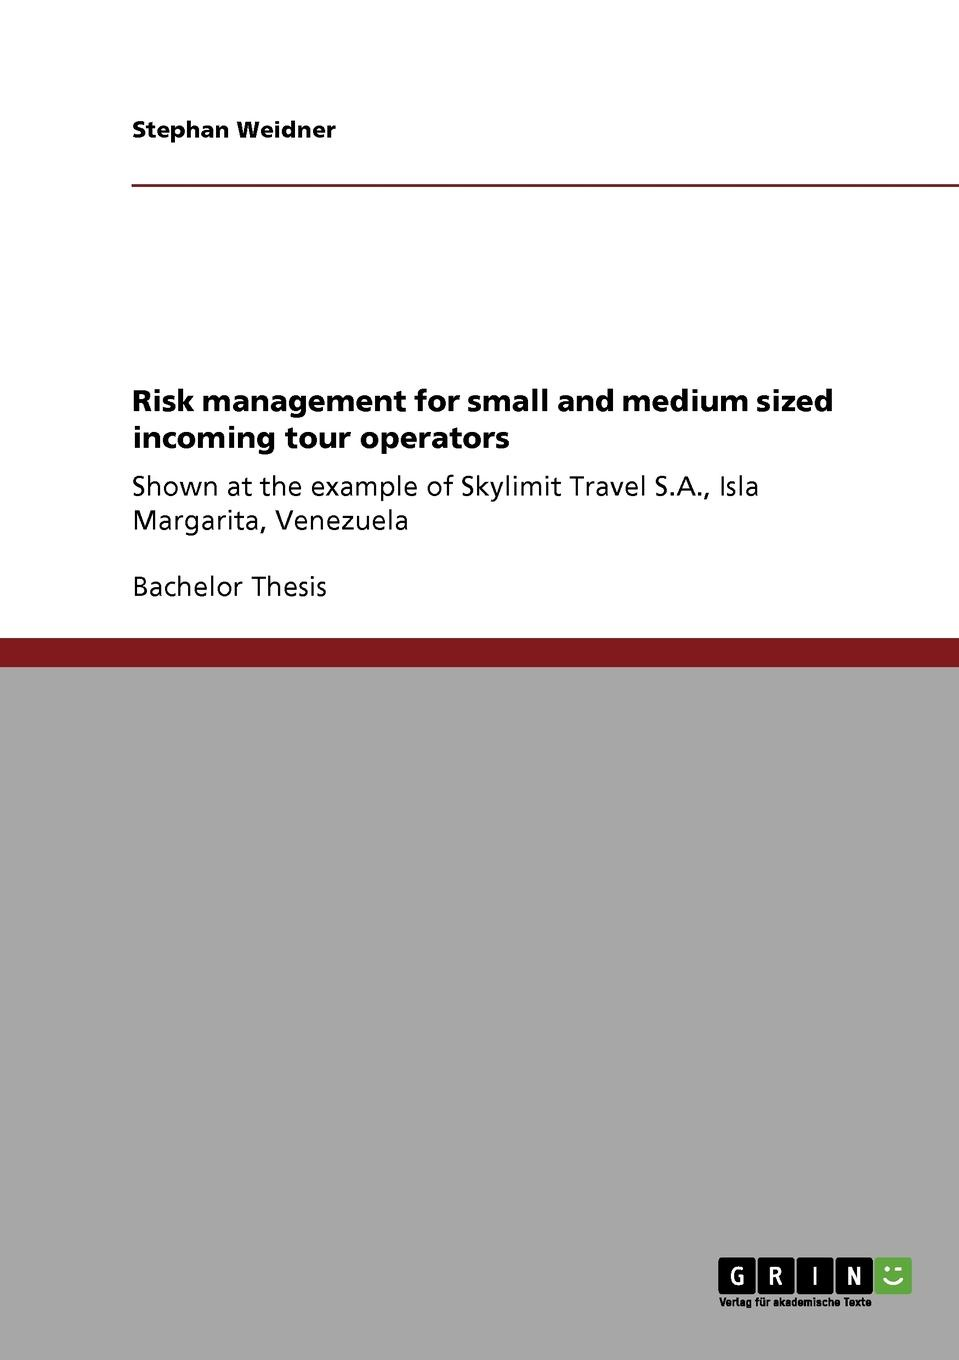 Stephan Weidner Risk management for small and medium sized incoming tour operators